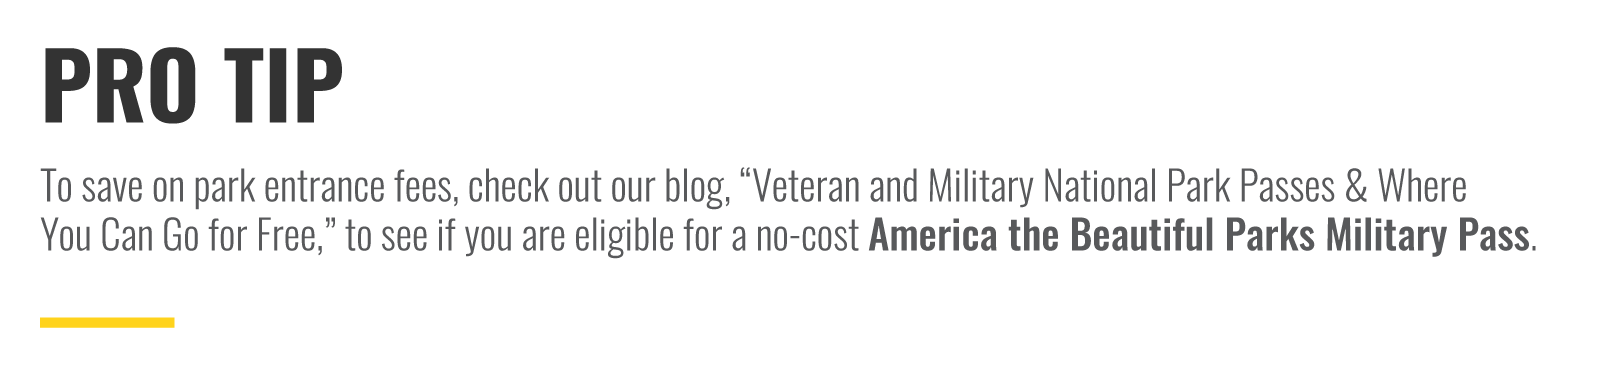 """Pro tip - To save on park entrance fees, check out our blog, """"Veteran and Military National Park Passes & Where You Can Go for Free,"""" to see if you are eligible for a no-cost America the Beautiful Parks Military Pass."""